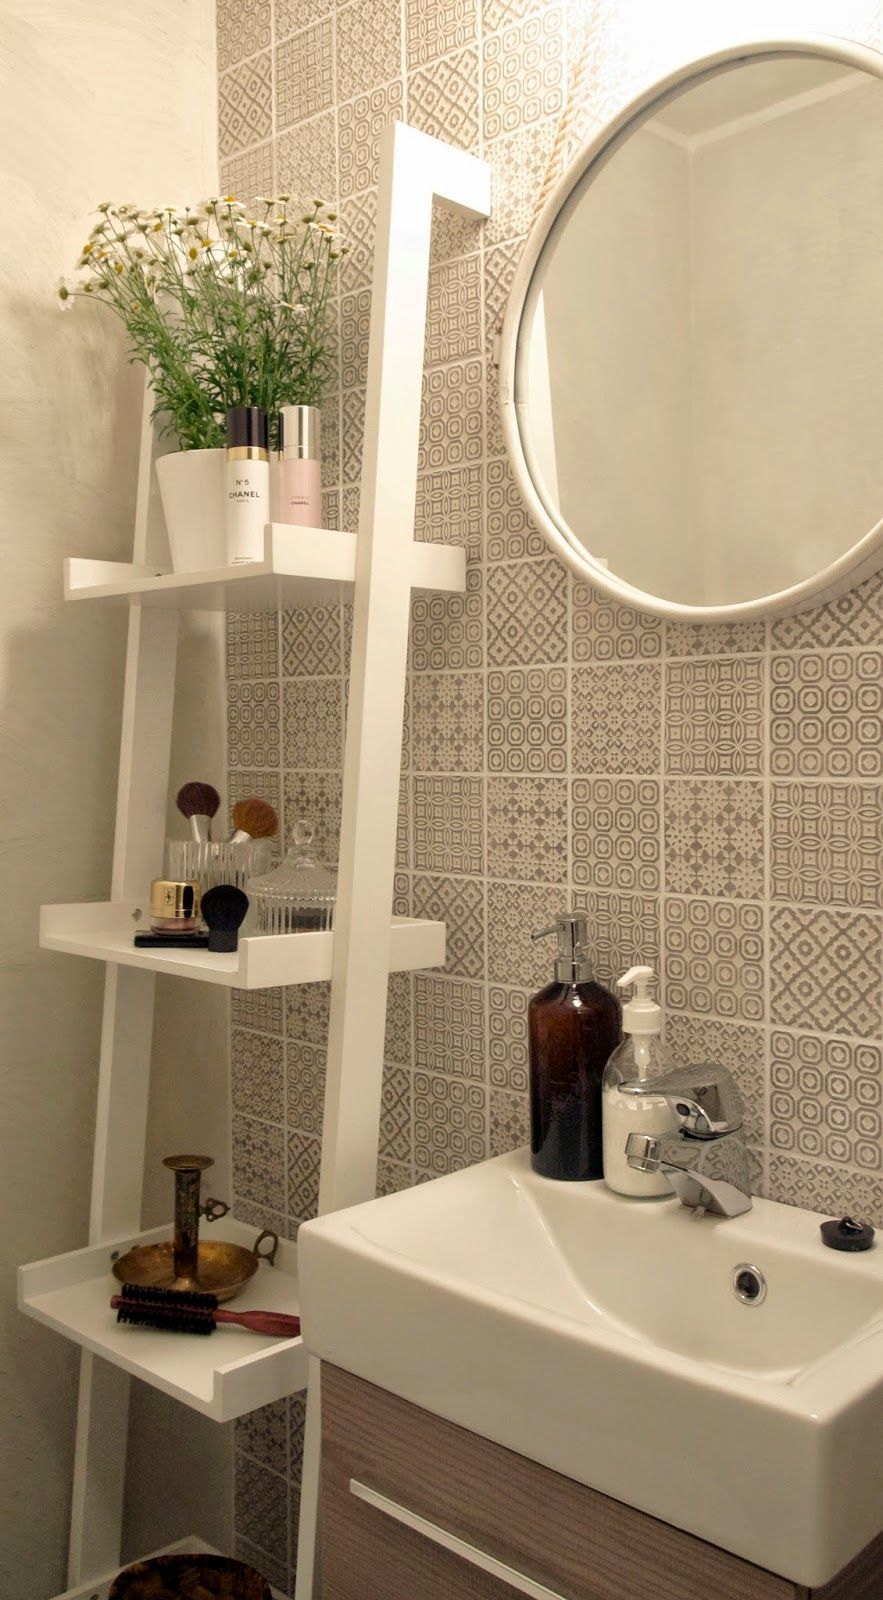 Design Megillah Bathroom Redesign For Under 200: Bathroom Remodel Ideas You MUST See For Your Lovely Home